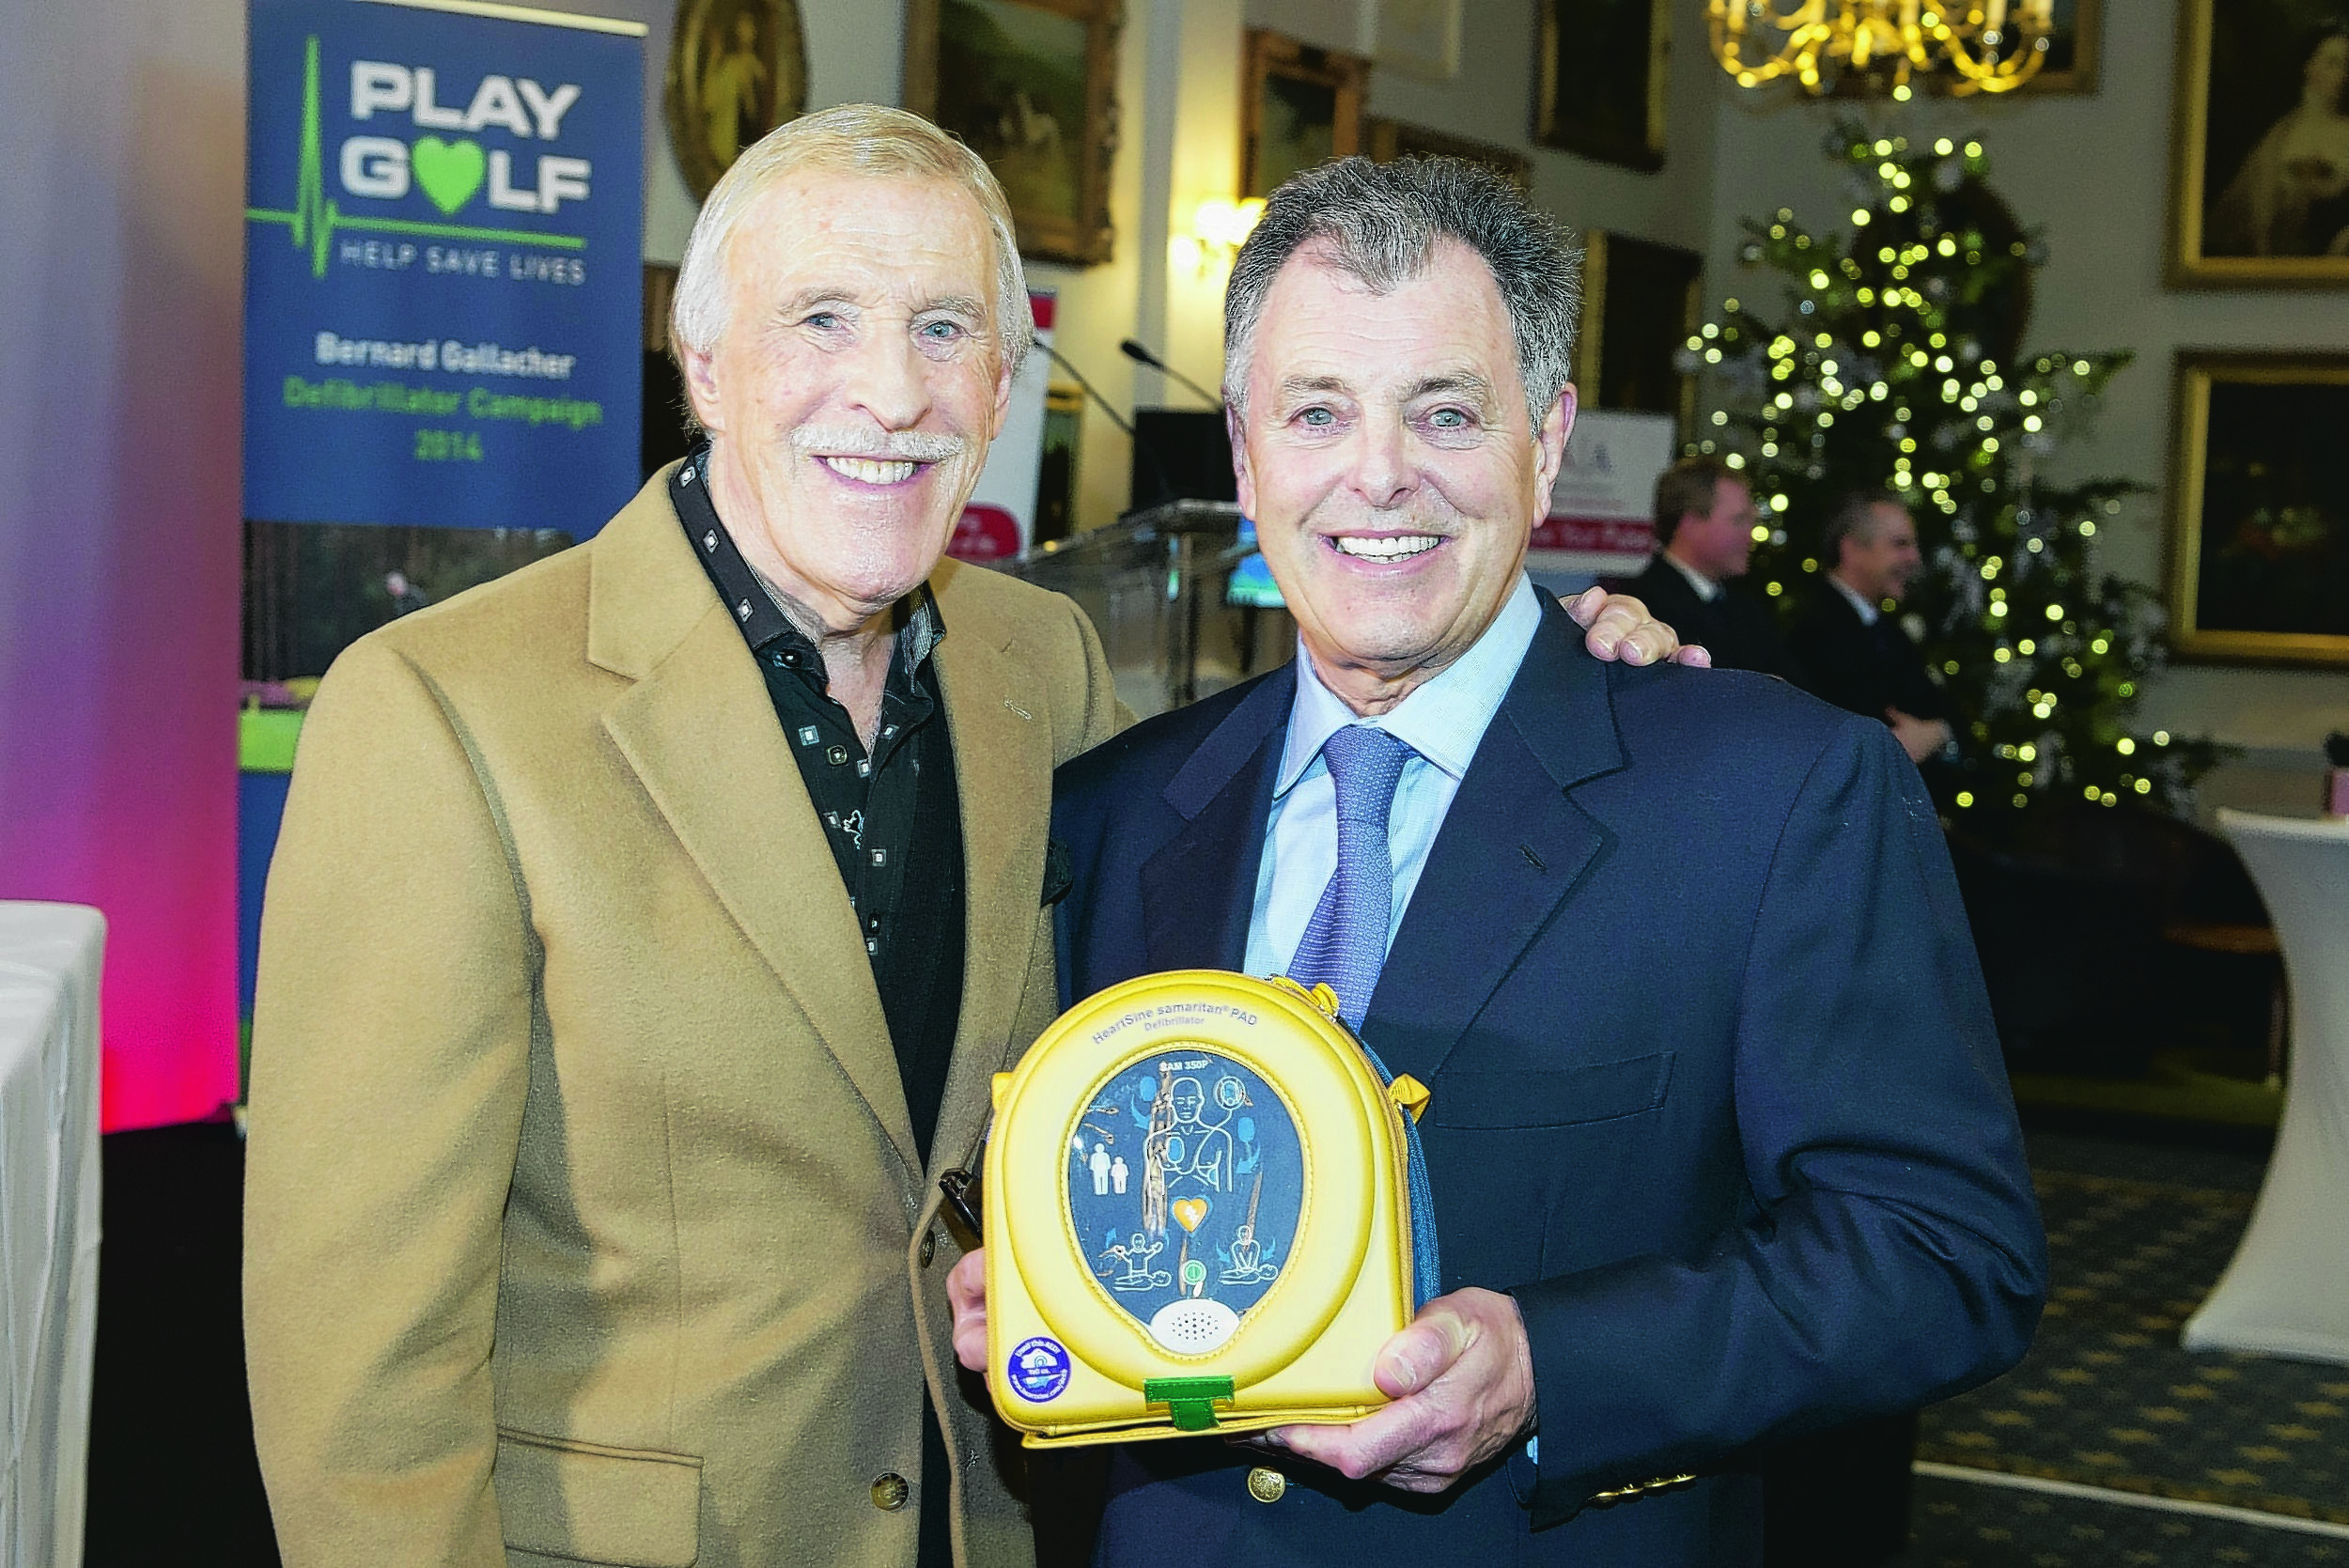 Bernard Gallacher with an AED and Bruce Forsyth